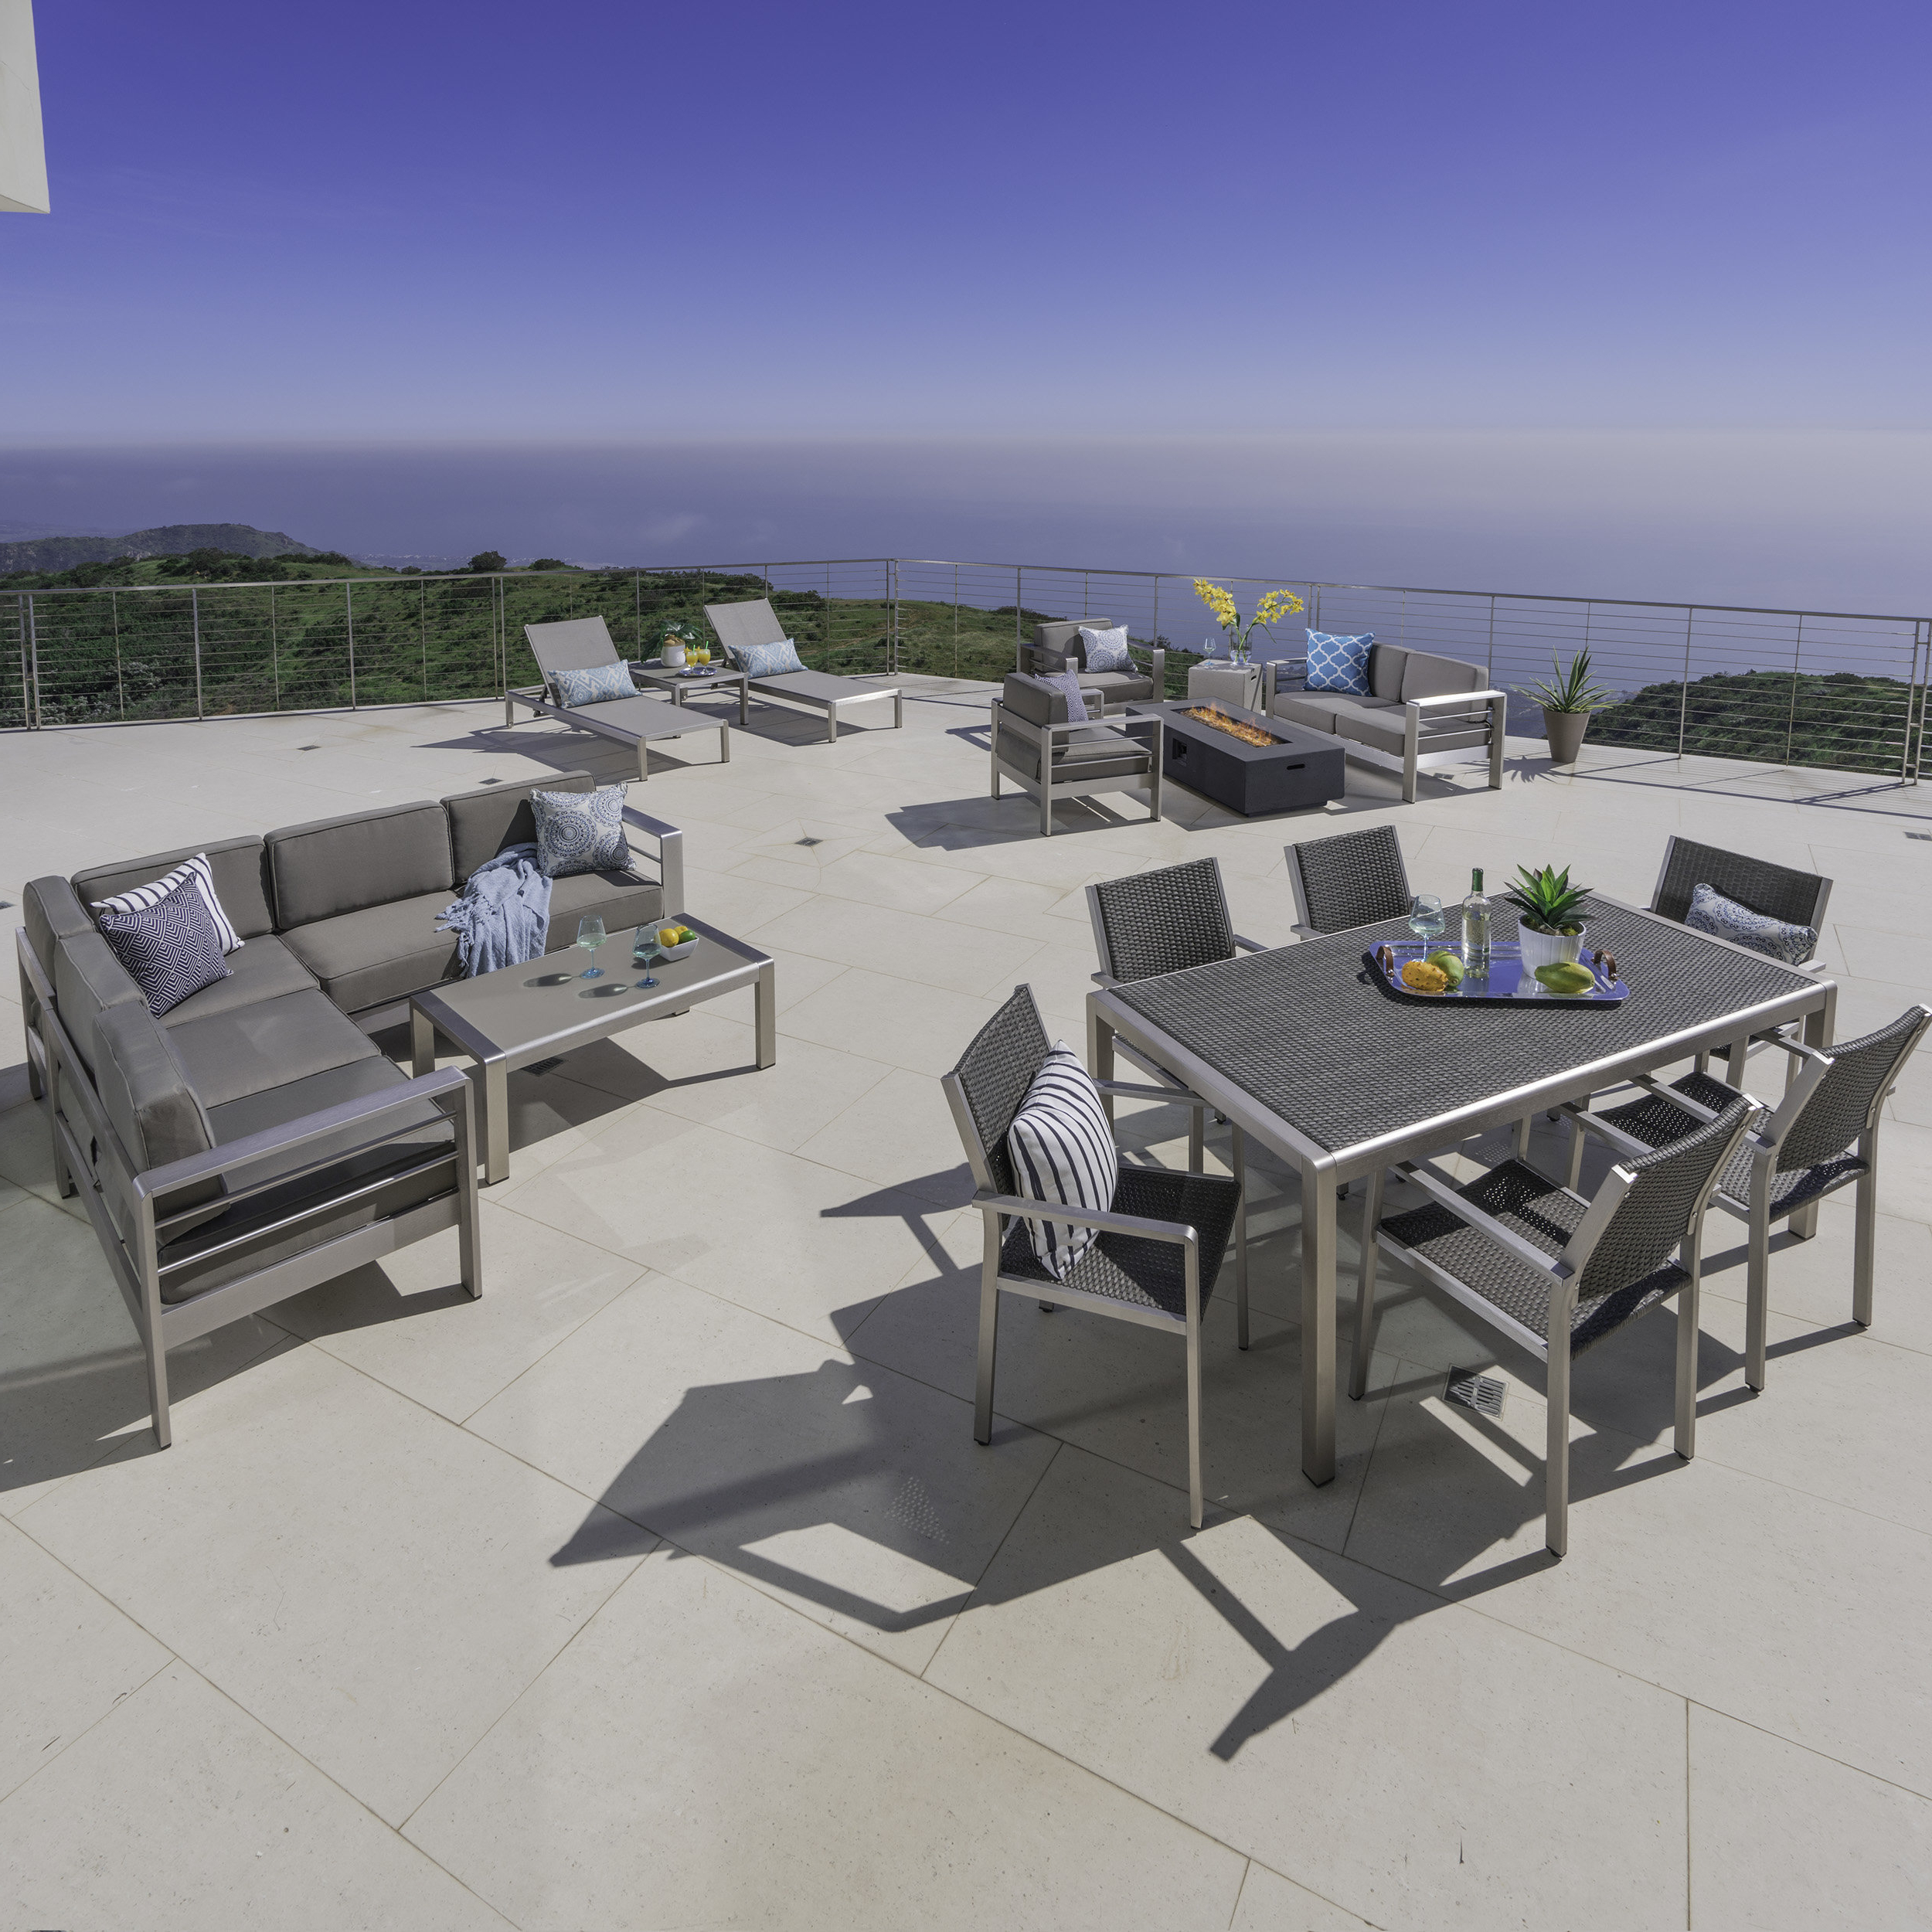 Popular Royalston Patio Sofas With Cushions For Royalston 17 Piece Conversation Set With Cushions (View 13 of 20)